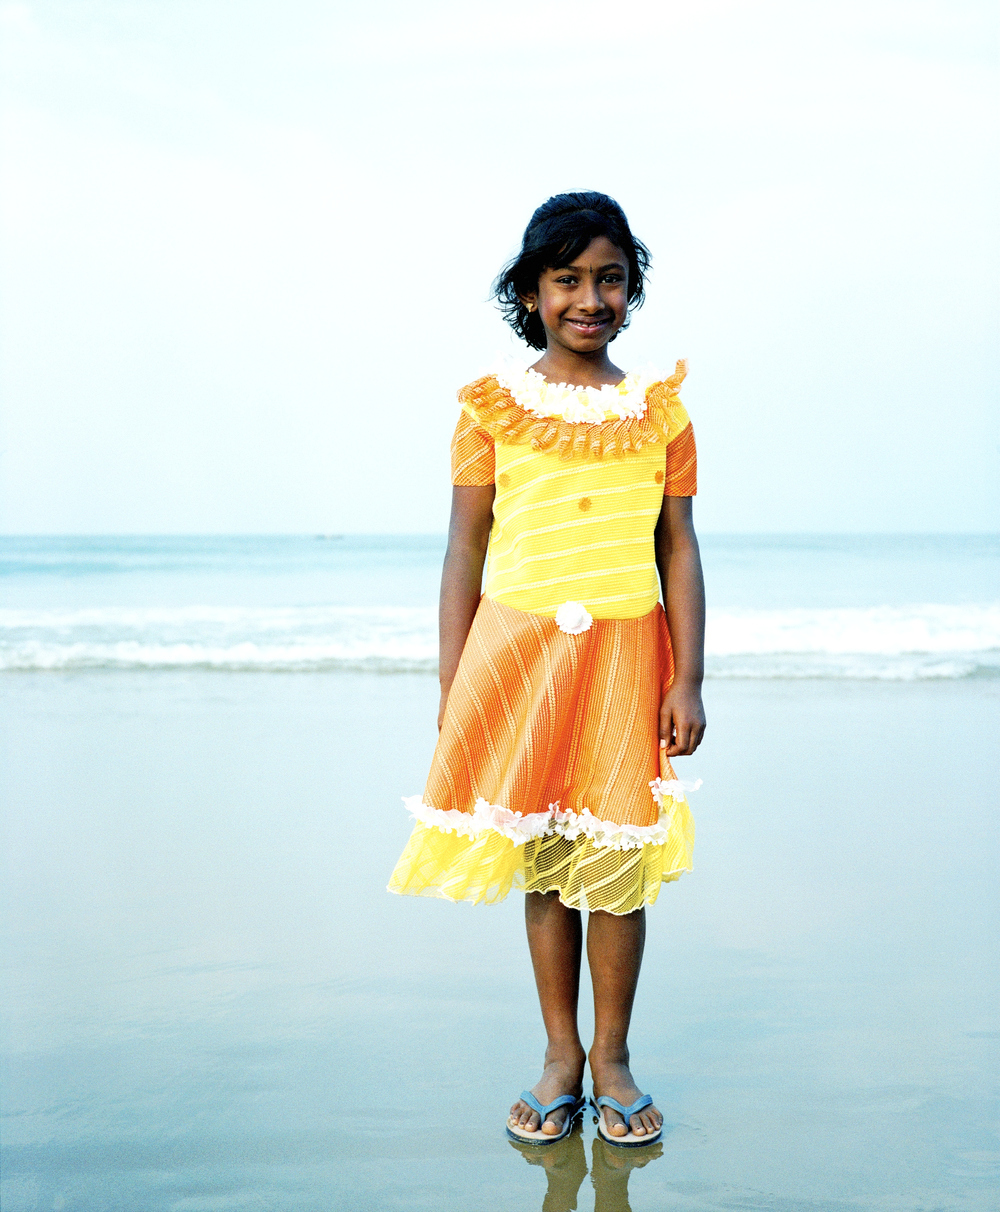 Orange dress girl.Gokarna.jpg